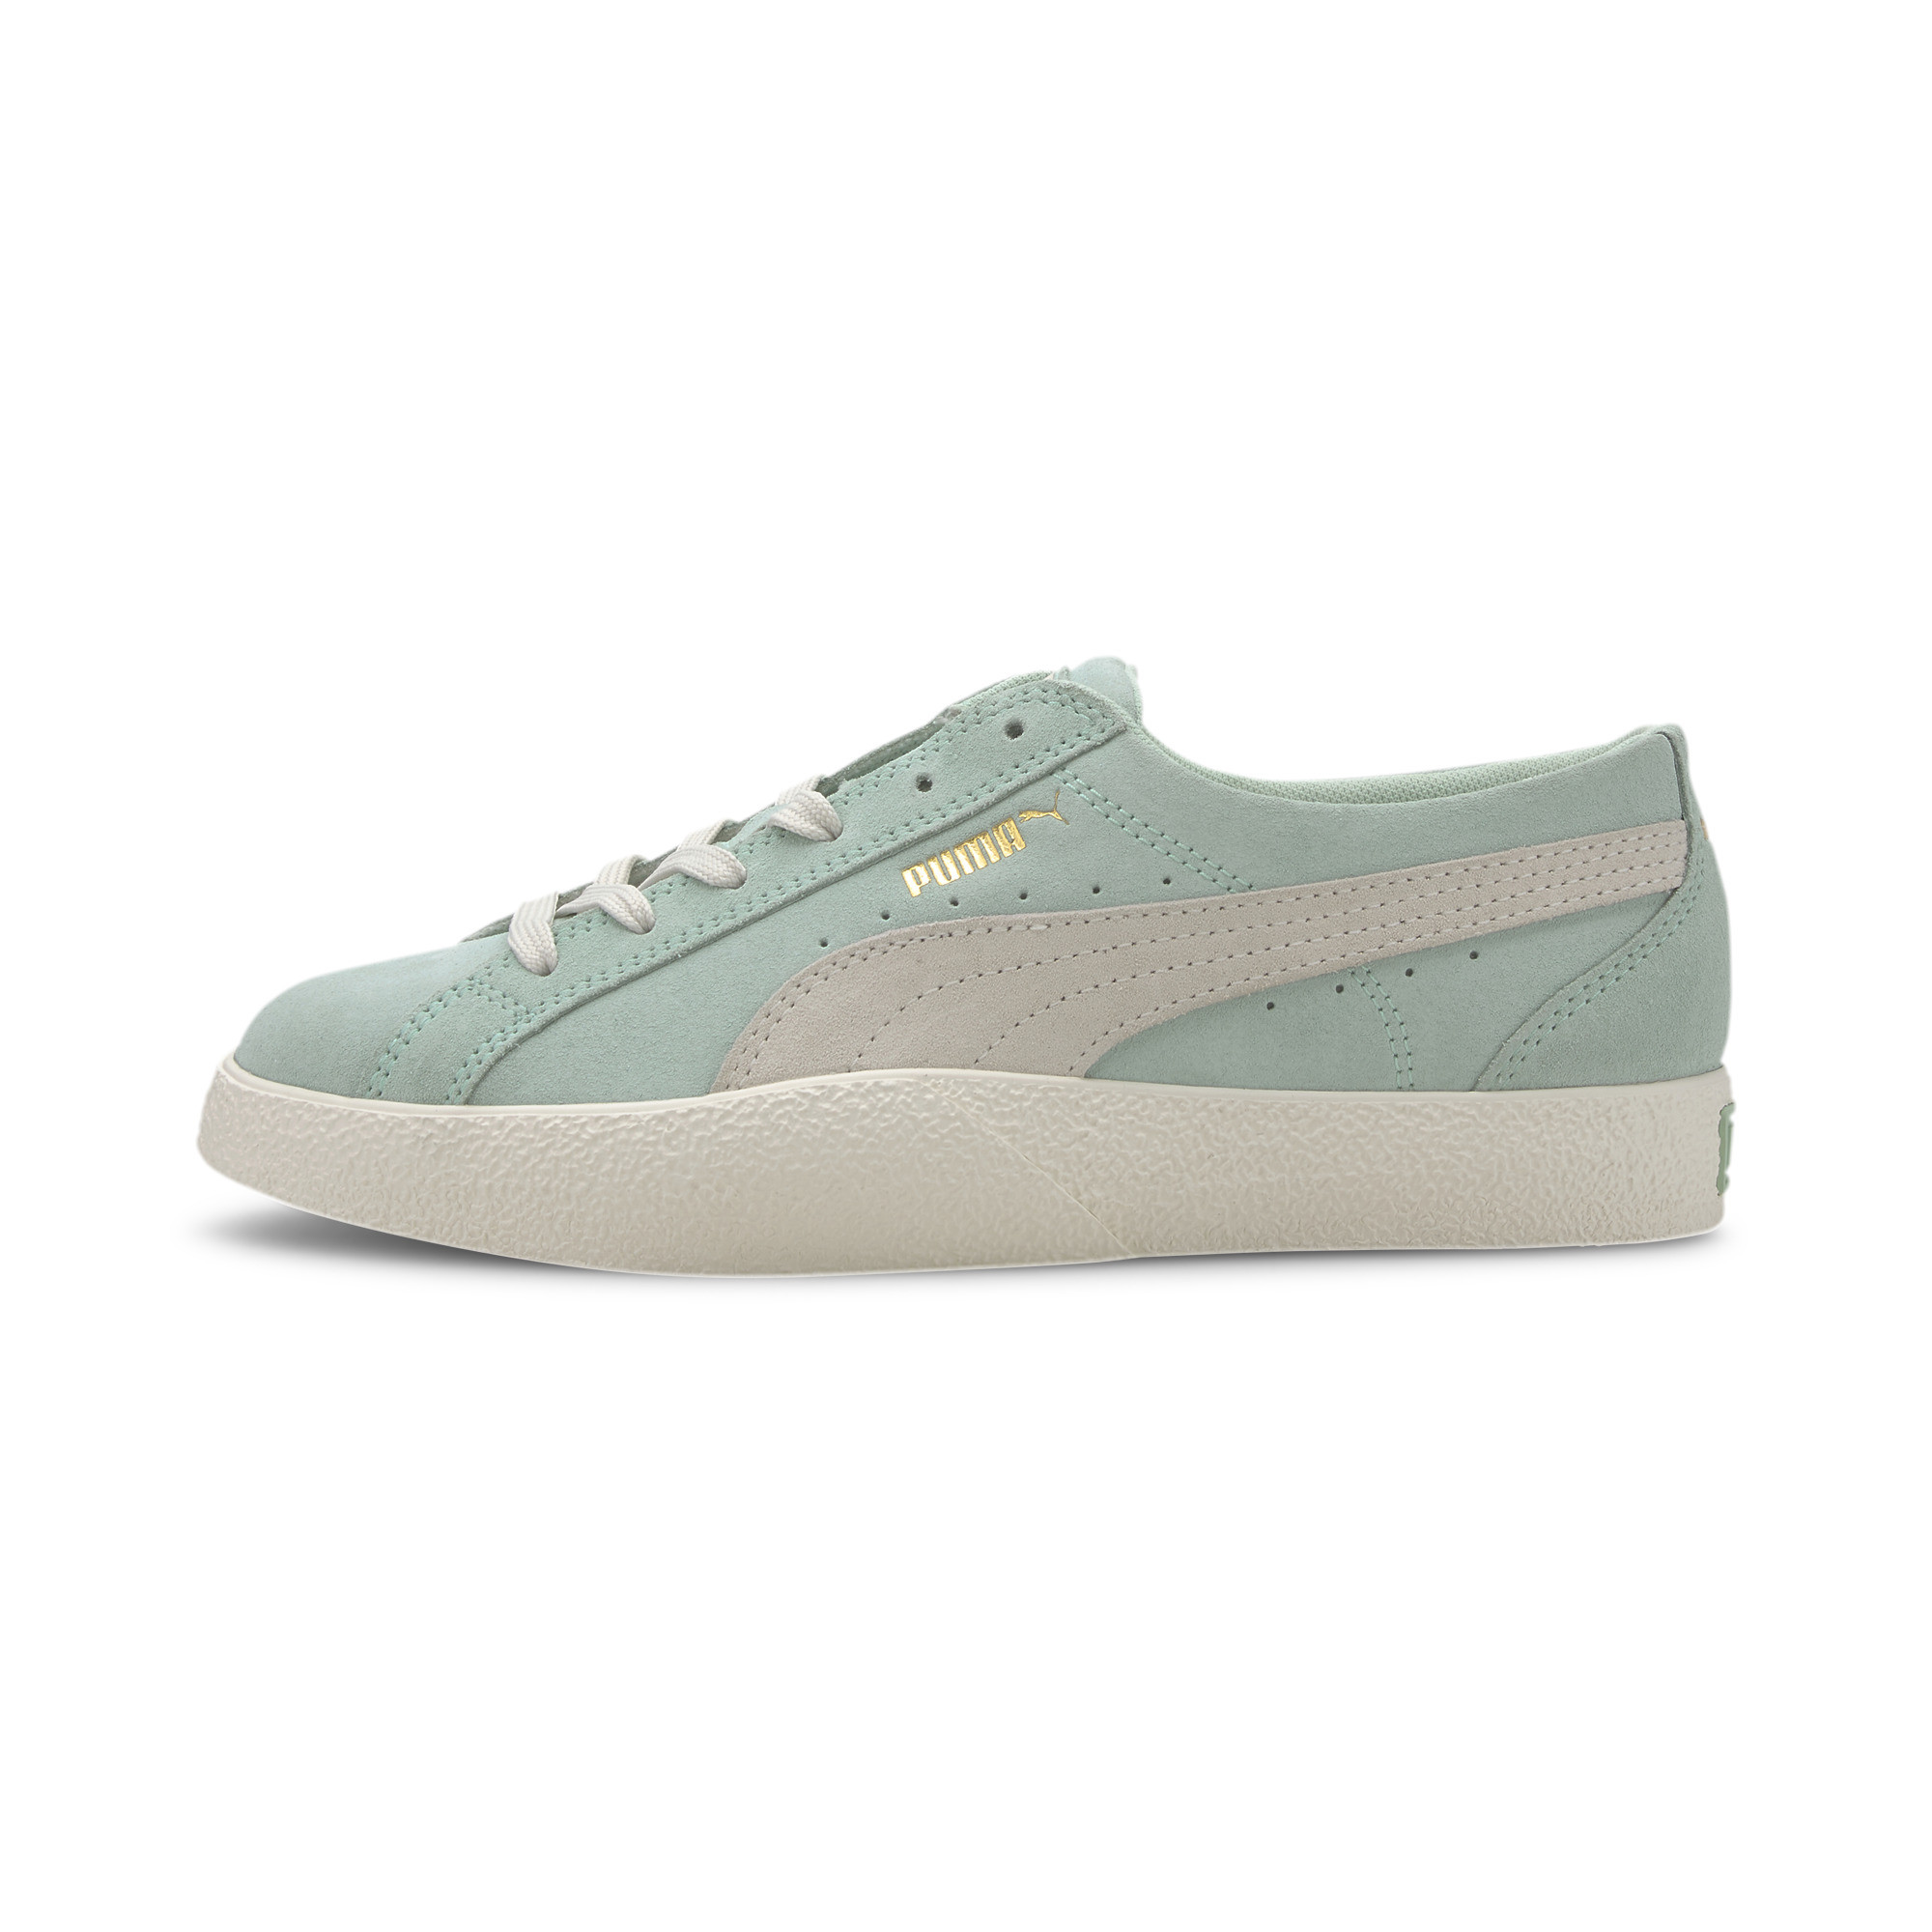 PUMA-Women-039-s-Love-Suede-Sneakers thumbnail 11